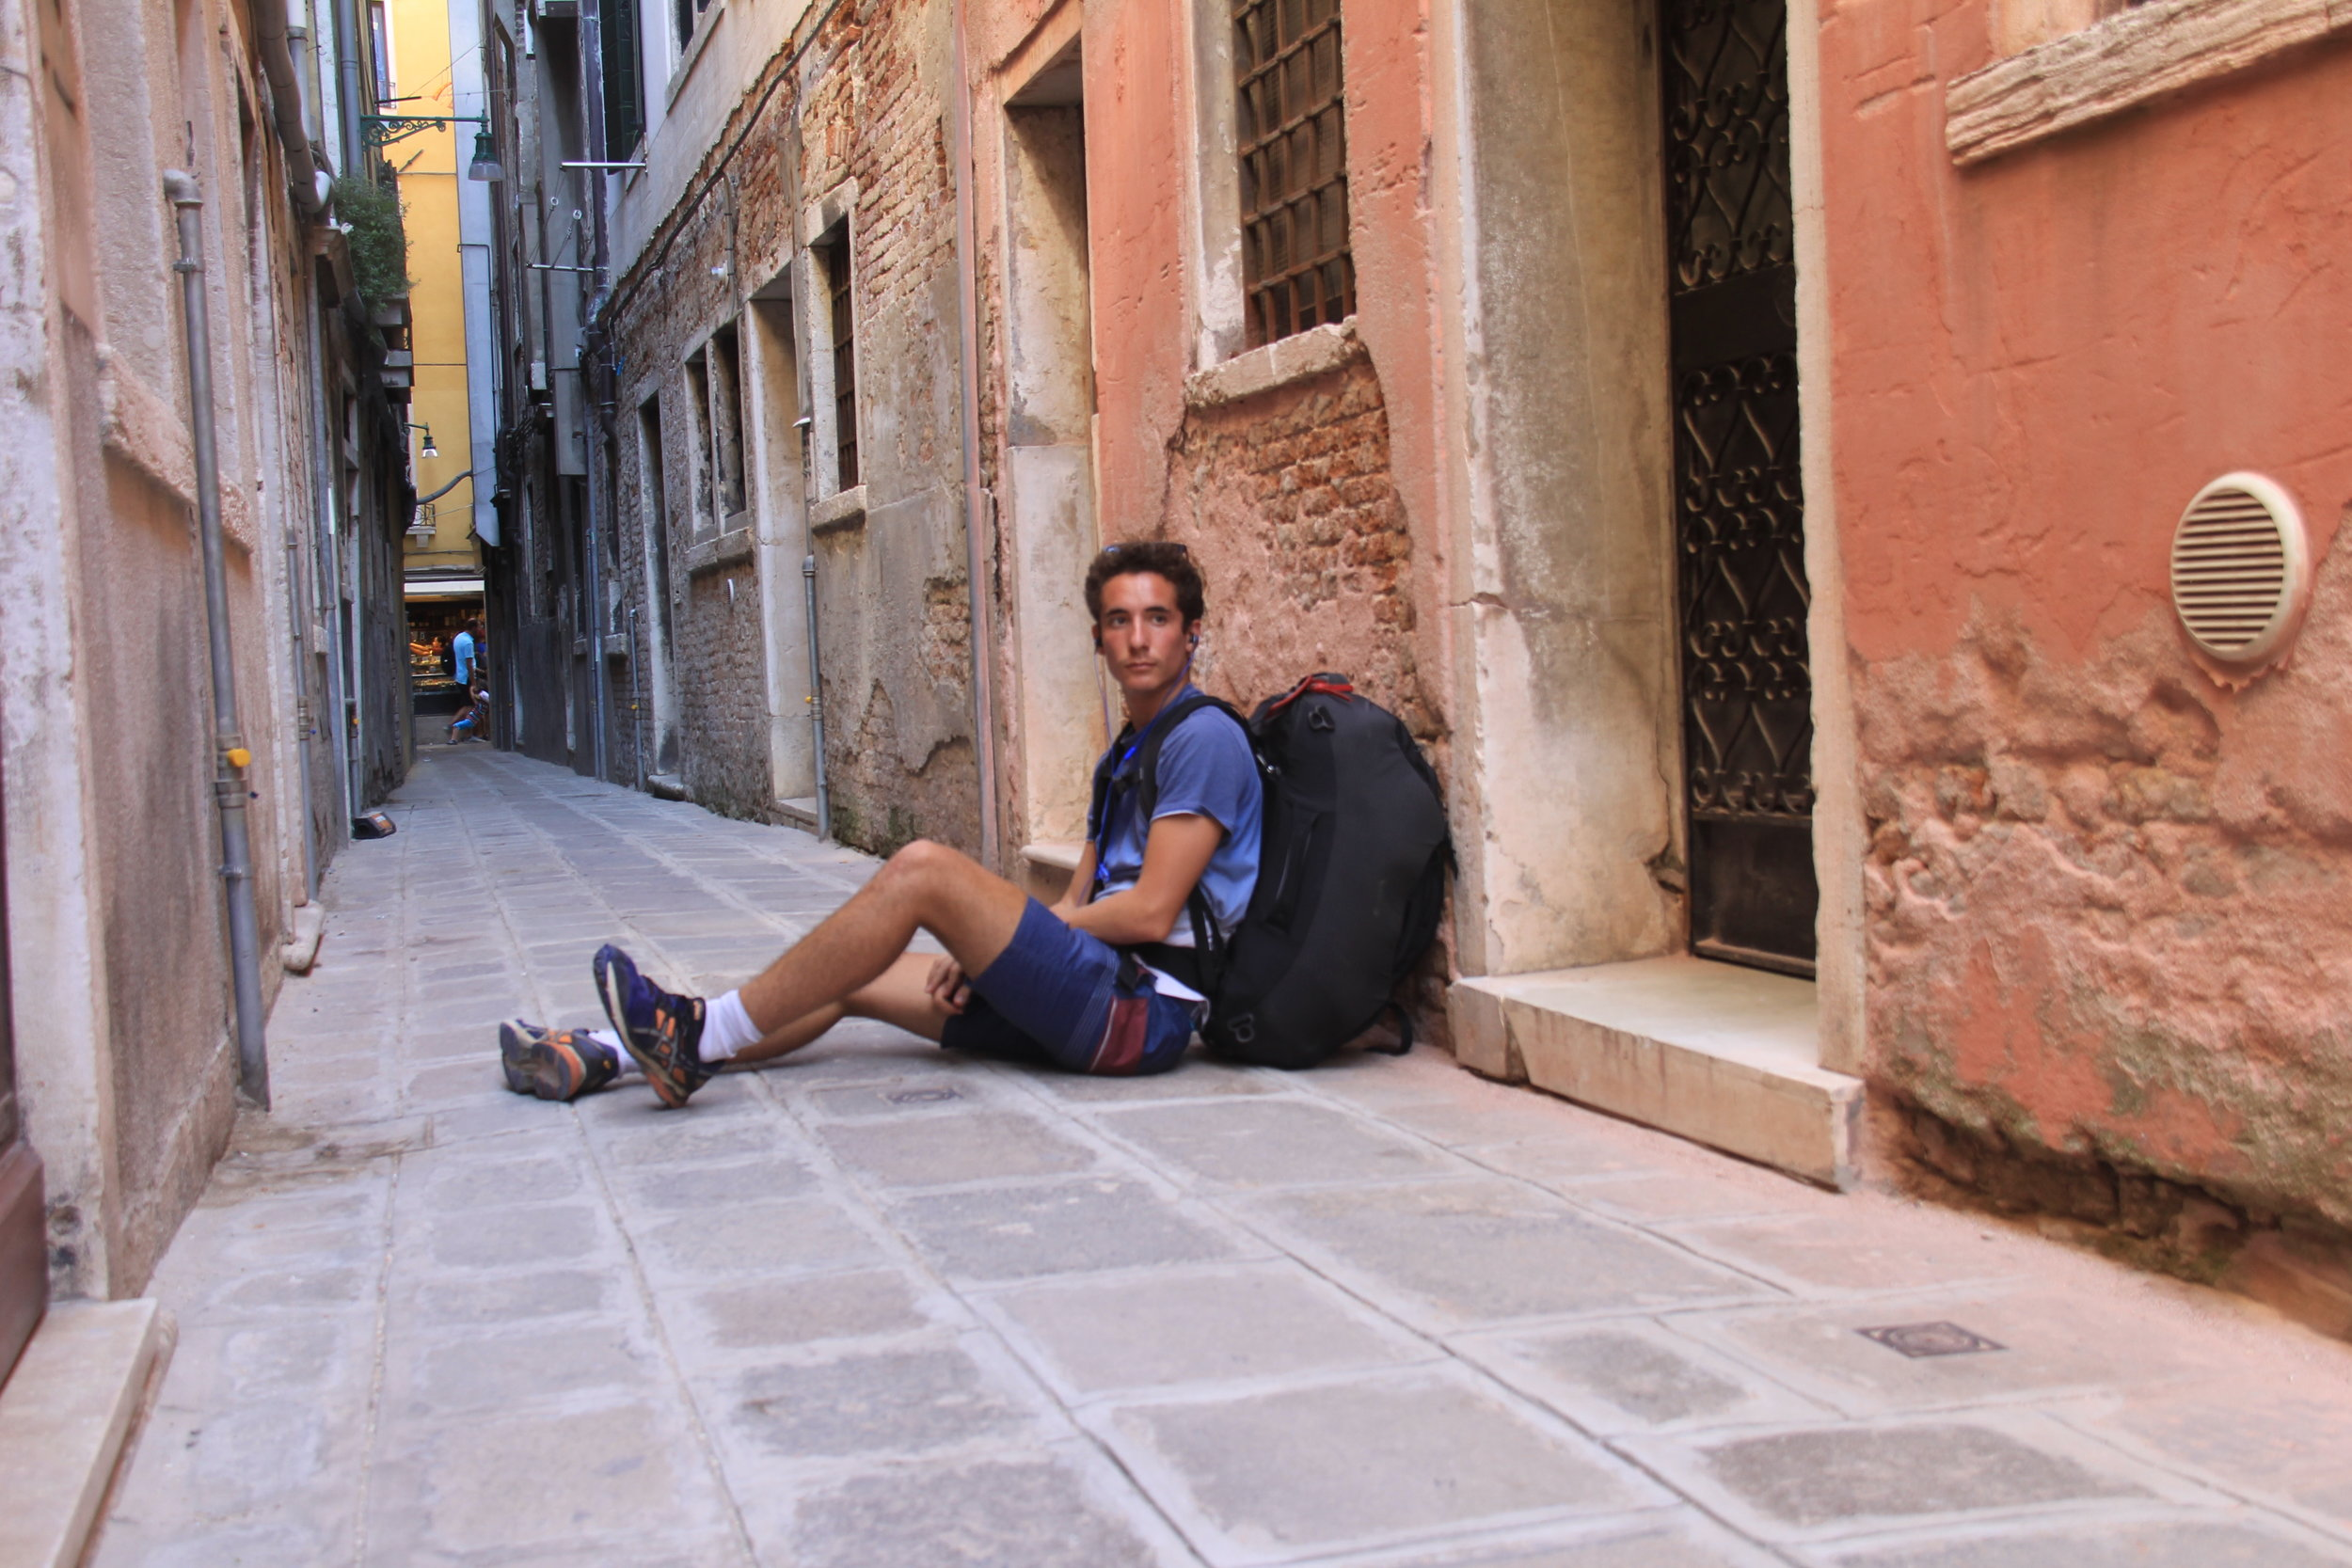 Going into those little hidden streets and hiding from all the tourists. San Marco is pretty but hiding yourself in the alleys and watching the boats gently float by and softly play the ukulele. That wins for me.